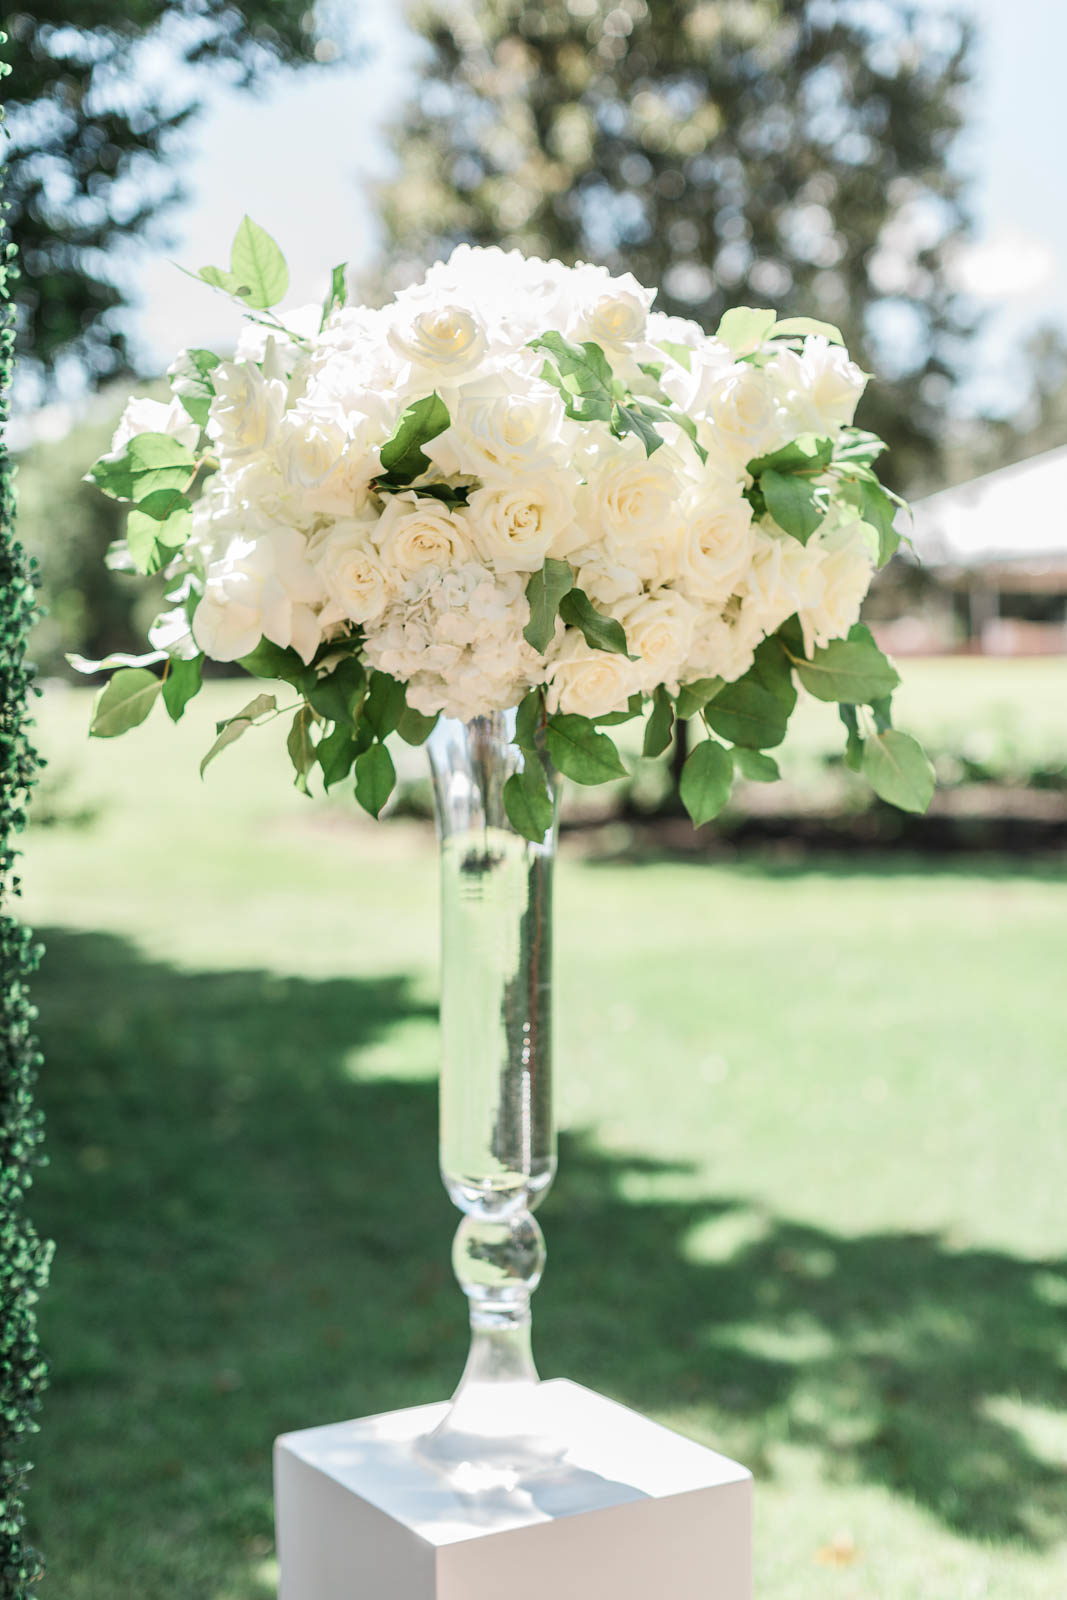 large floral arrangement with white roses and hydrangeas in tall glass vase.